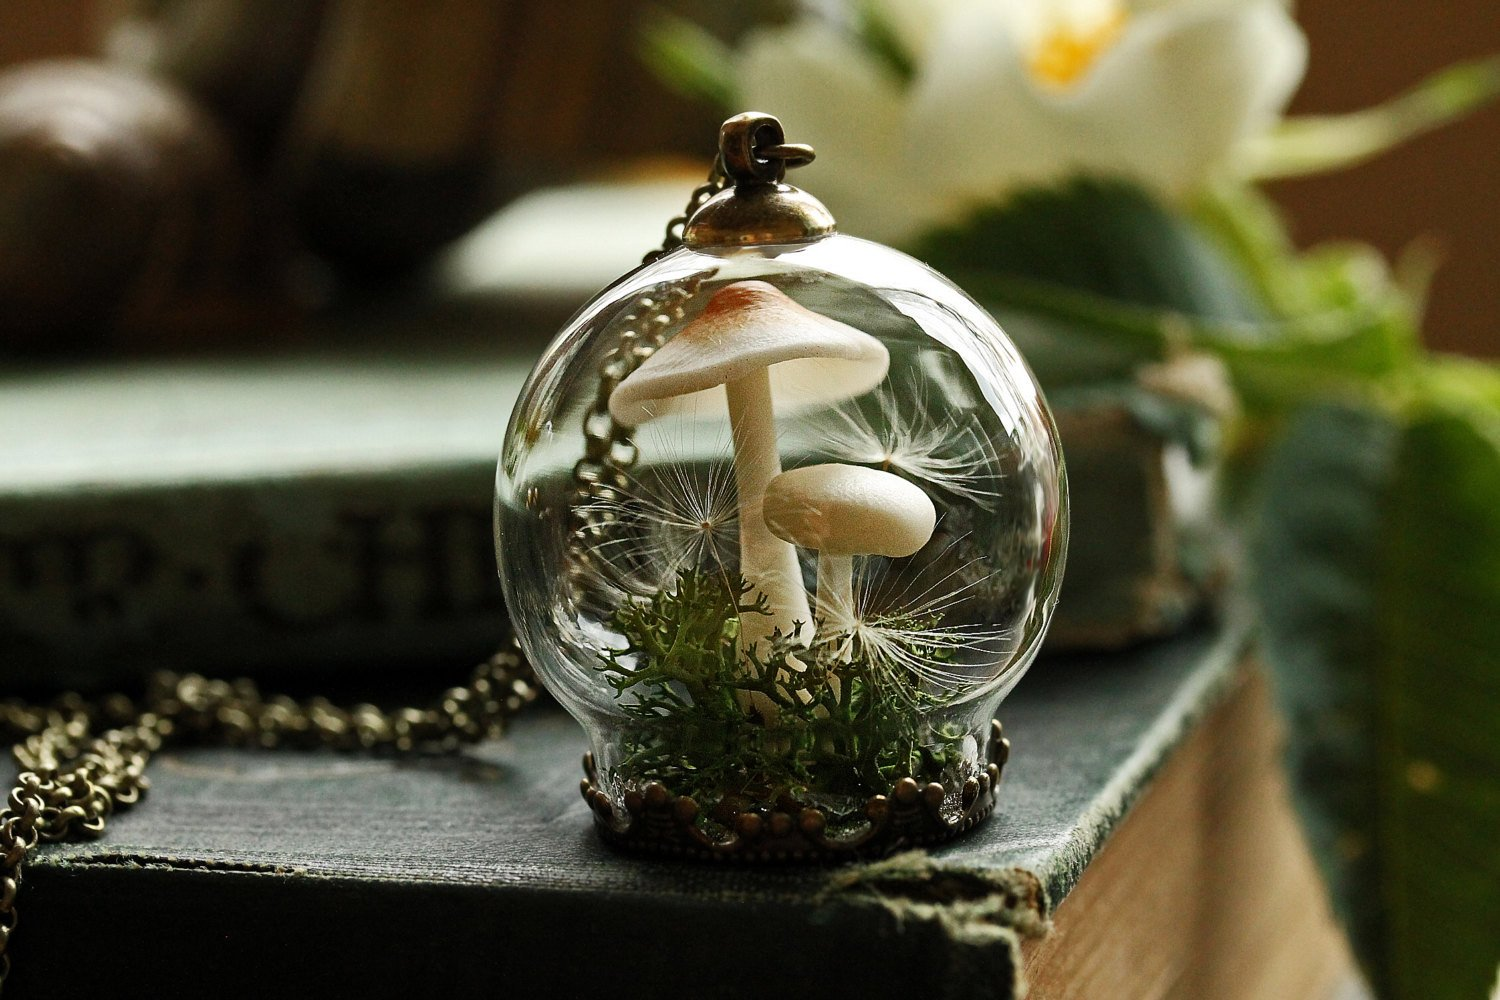 Tiny mushroom terrrarium moss jewellery pendant necklace handmade terrarium dandelion seed wish necklace